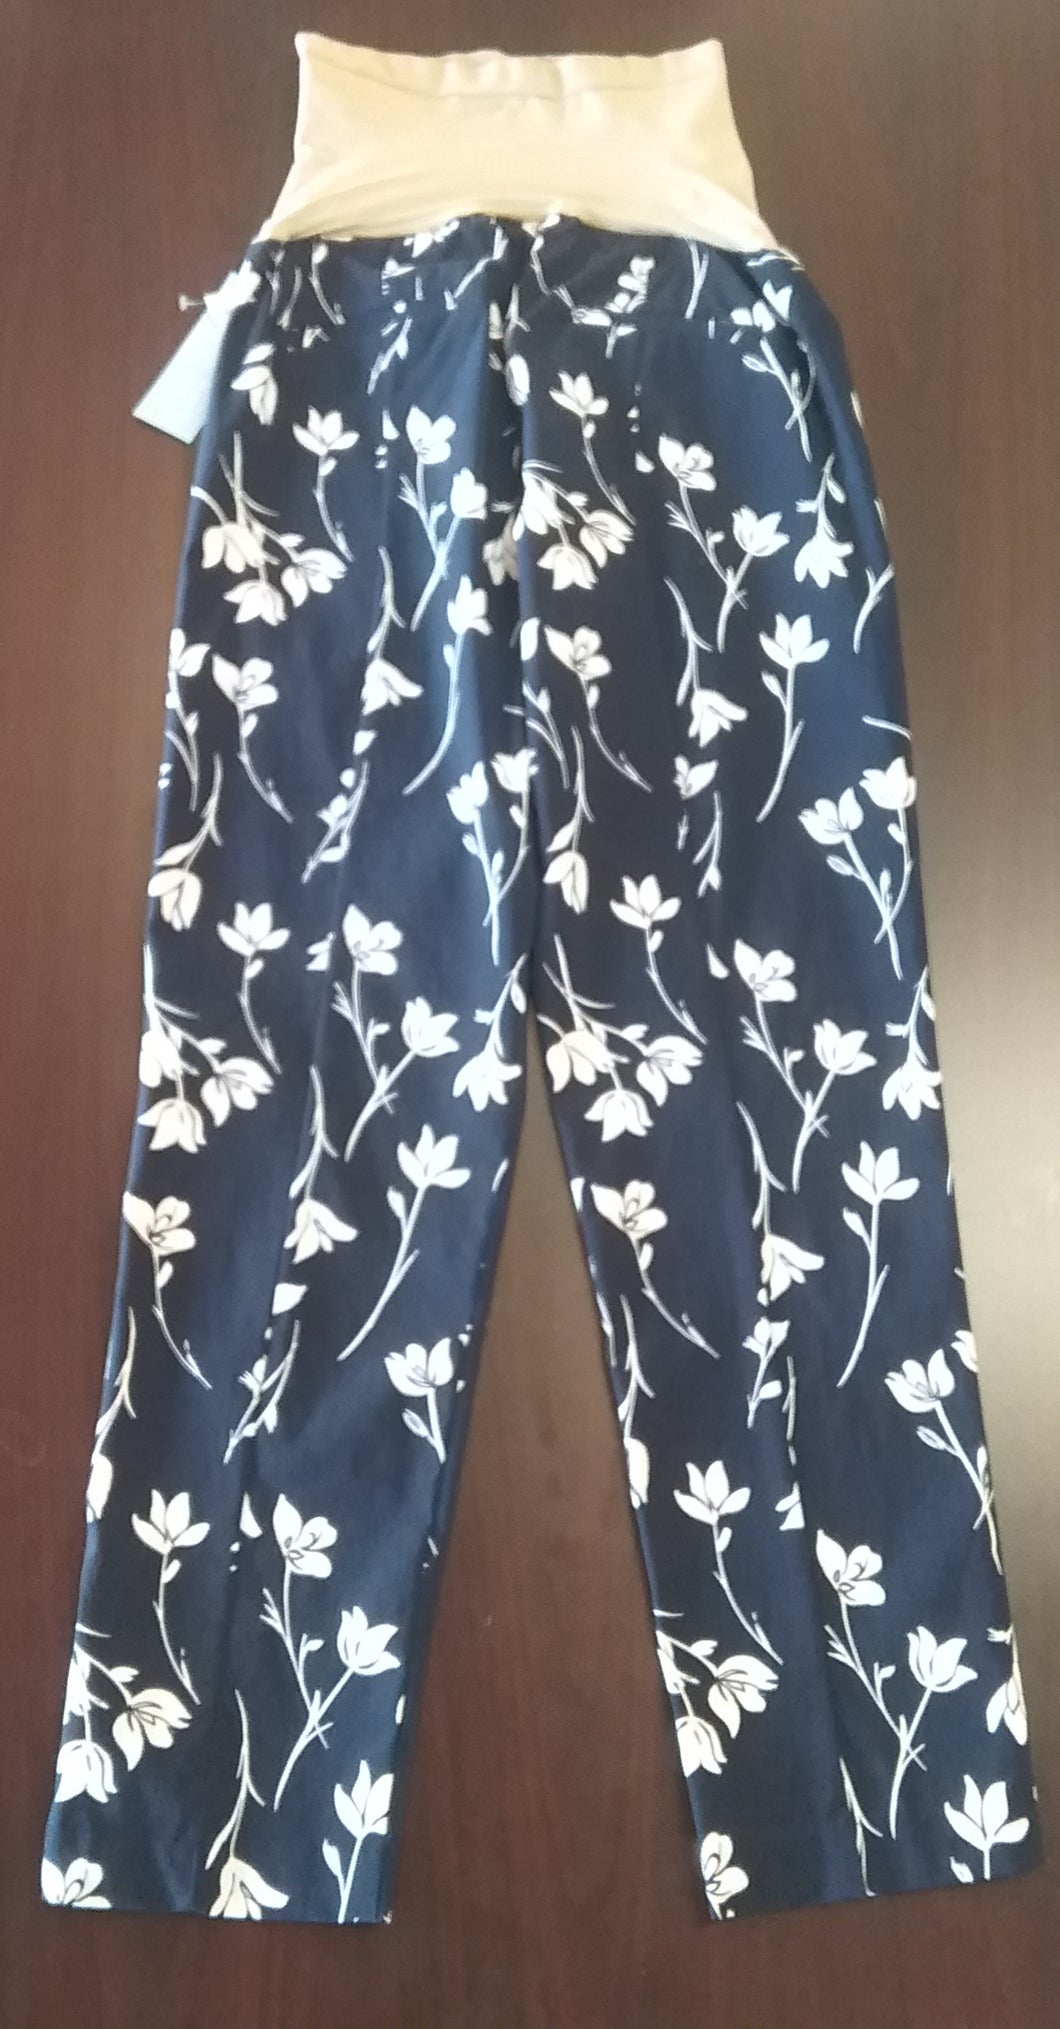 New XL Full Panel Navy Floral Skinny Maternity Pants